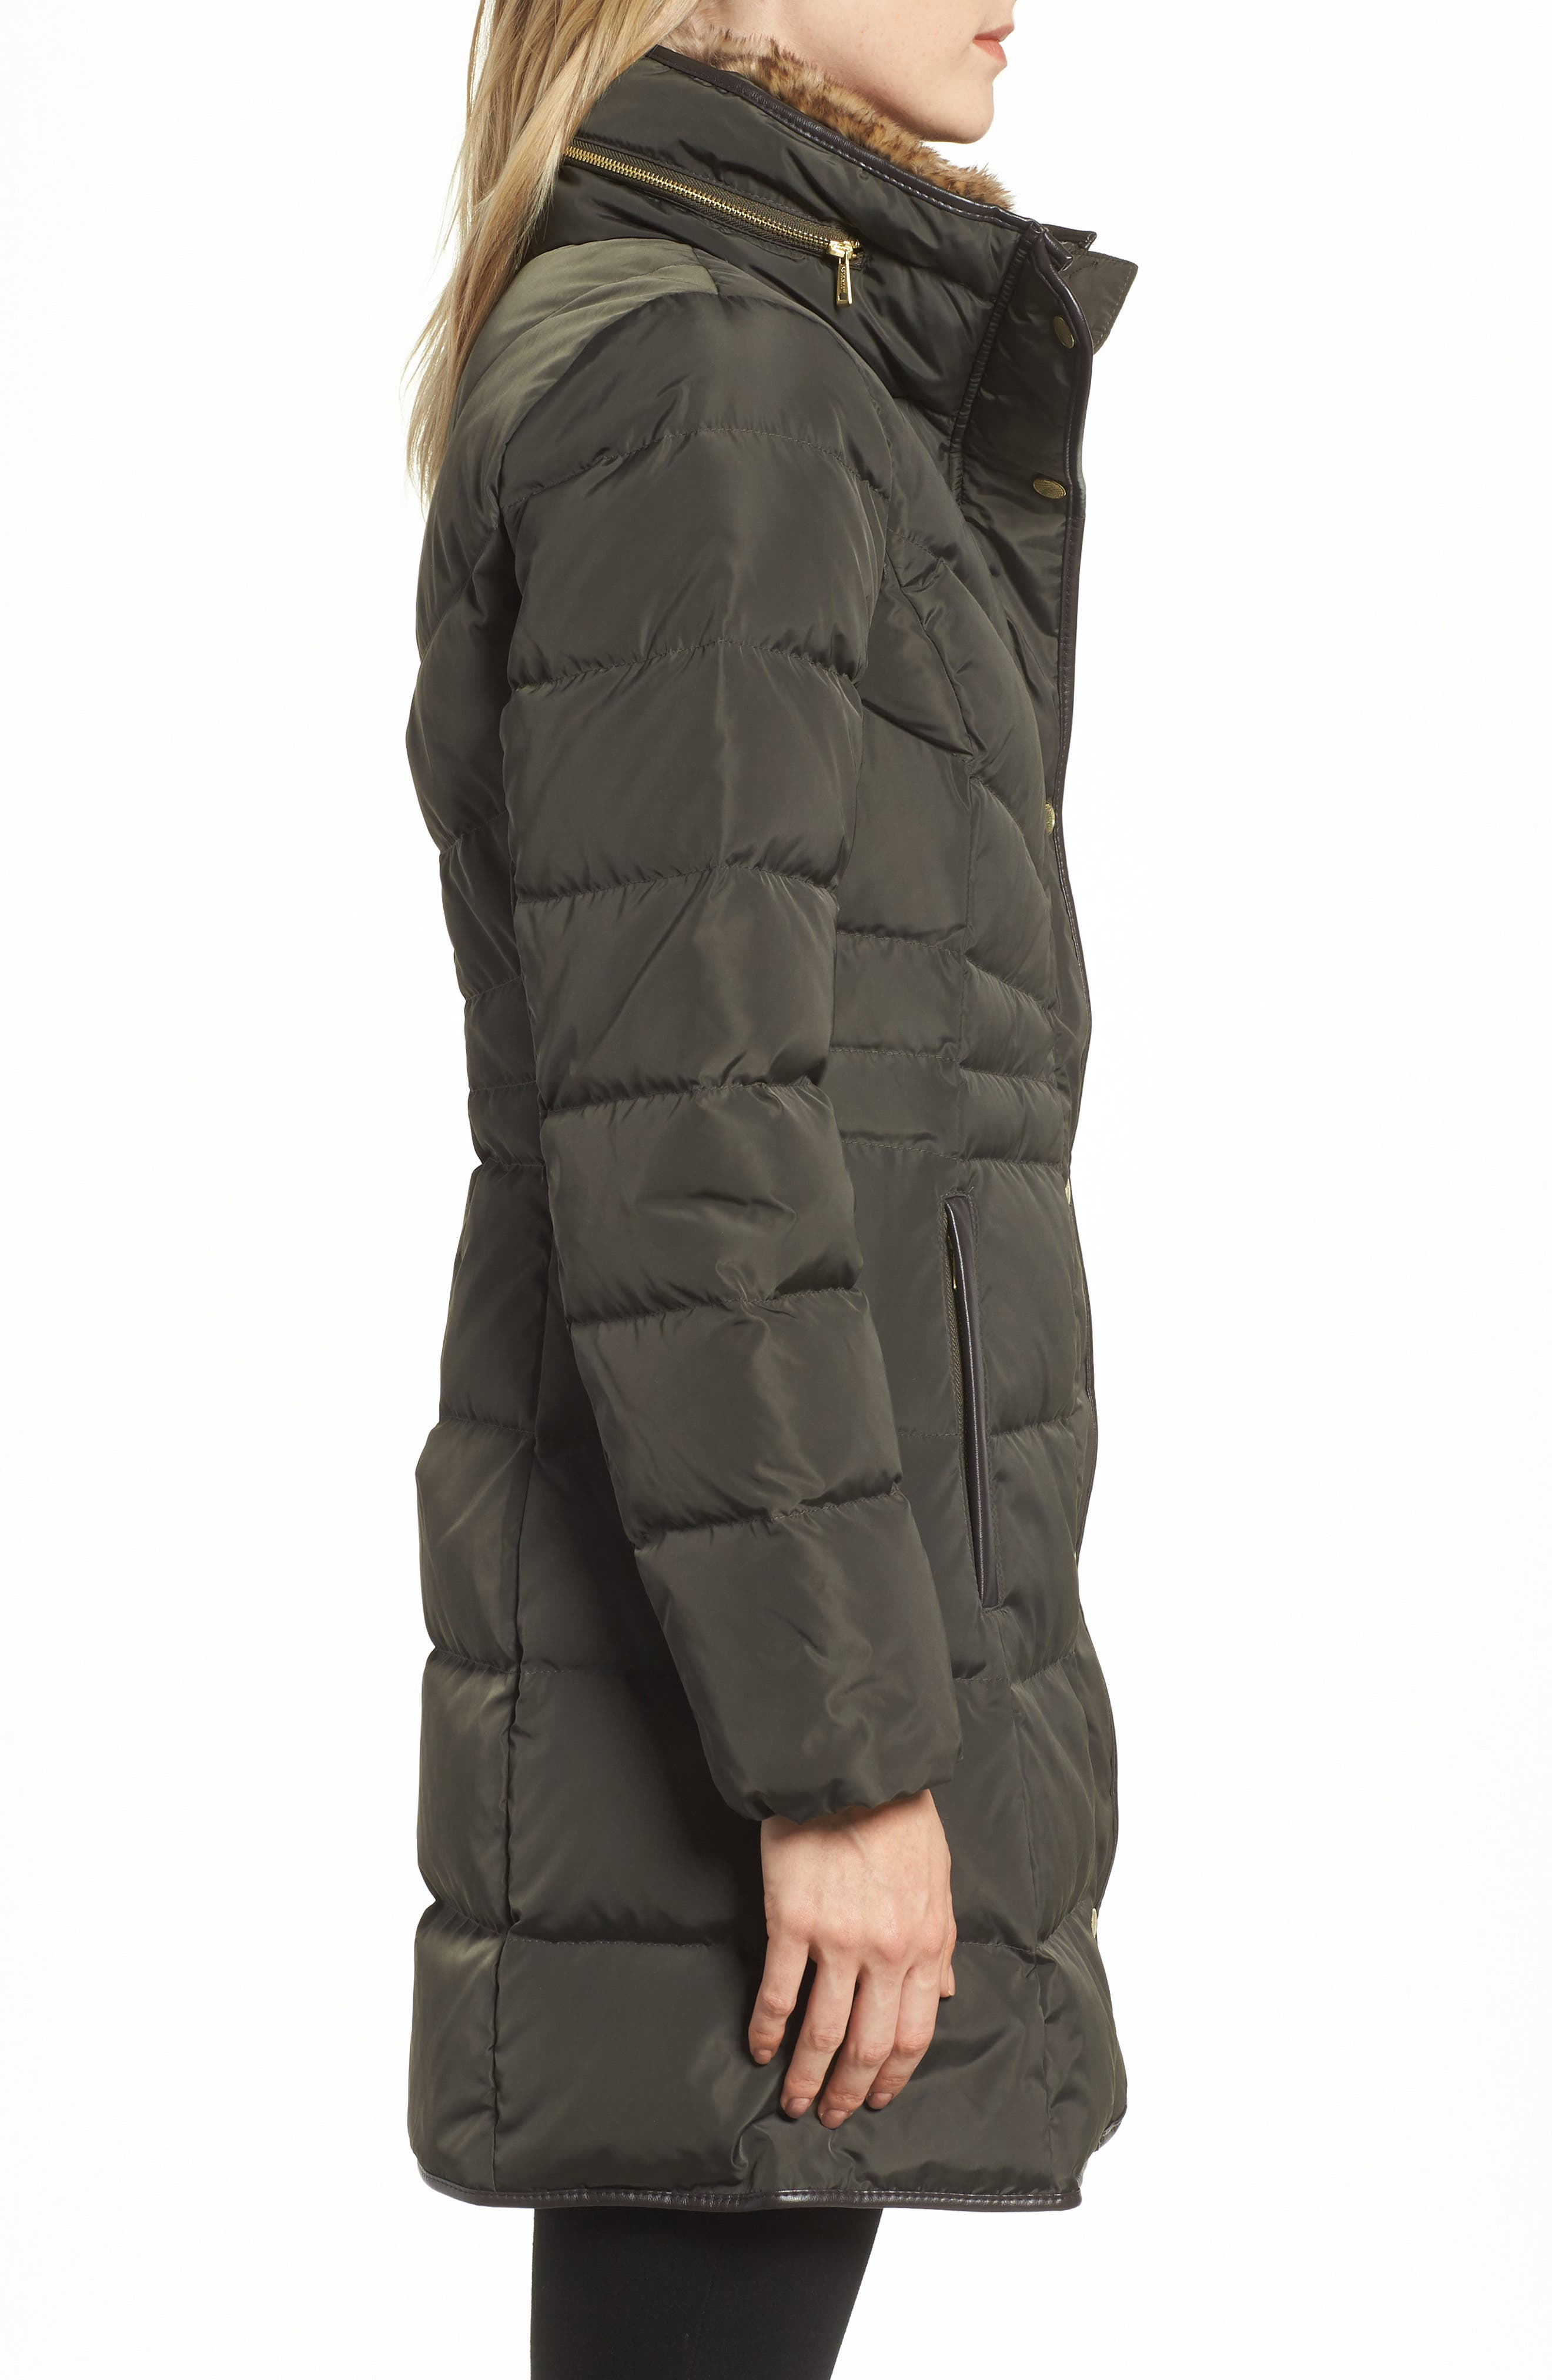 Cole Haan Quilted Down & Feather Fill Jacket with Faux Fur Trim,                             Alternate thumbnail 3, color,                             FOREST